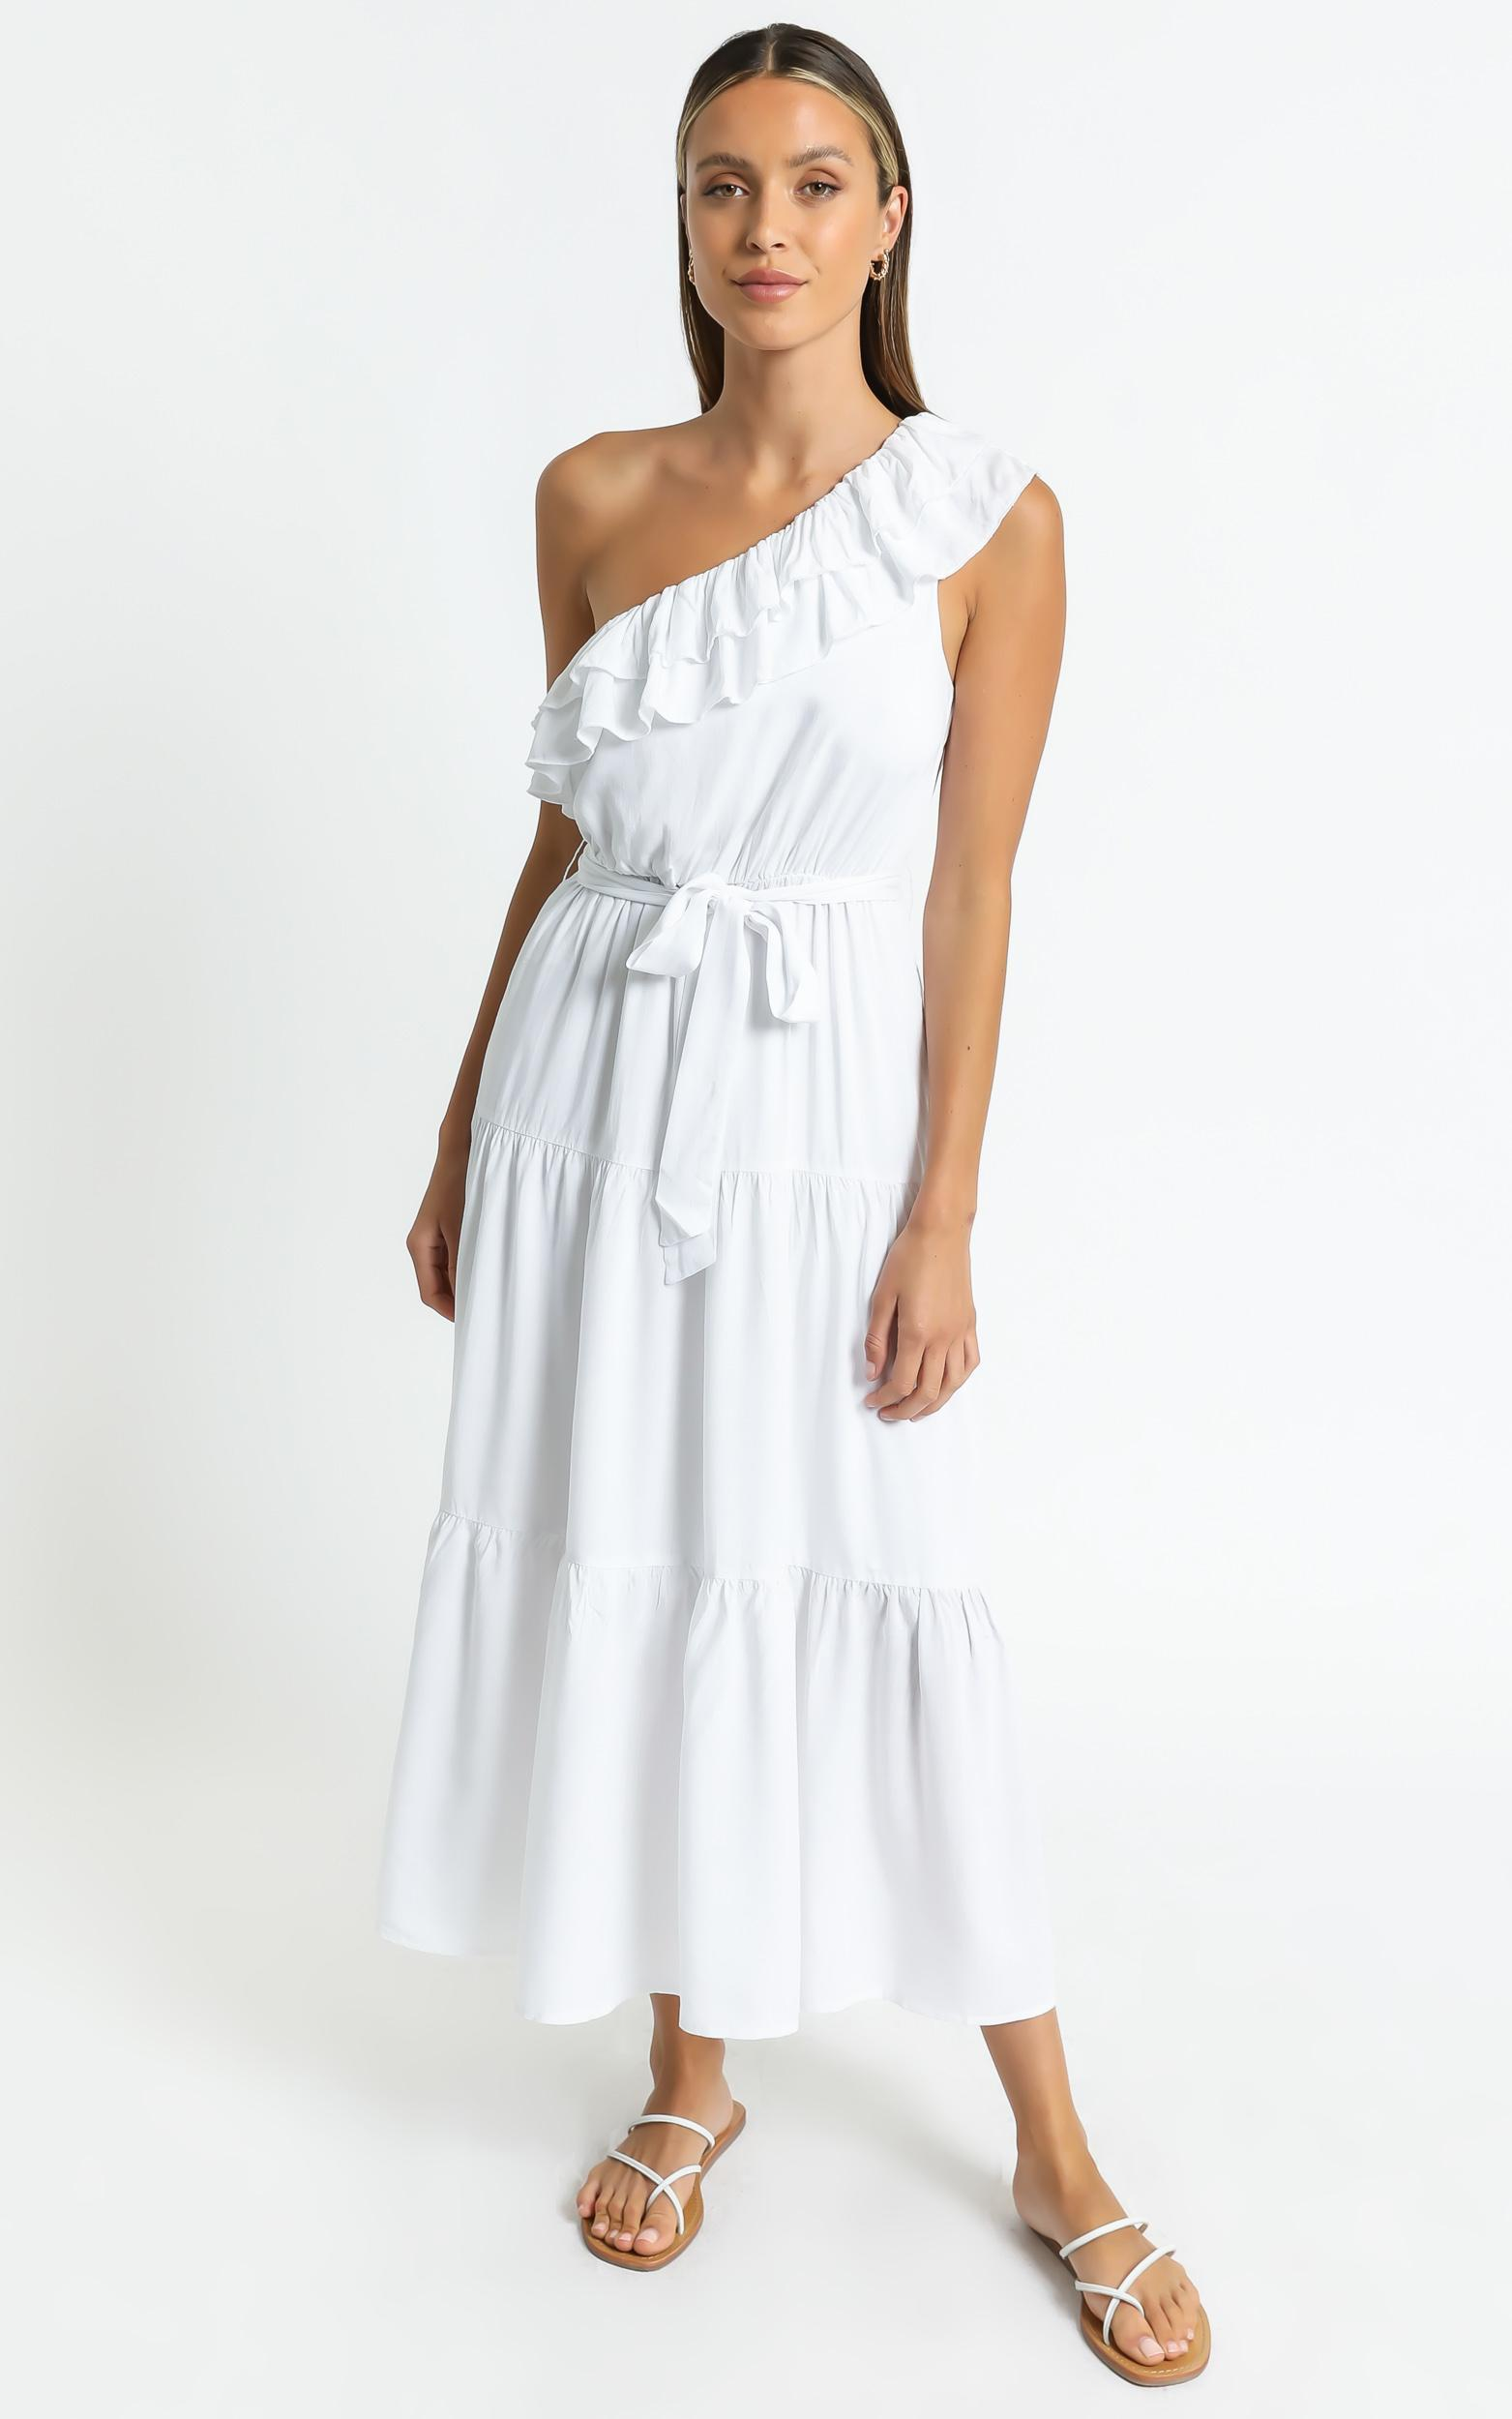 Mimosa Dress in White - 6 (XS), White, hi-res image number null